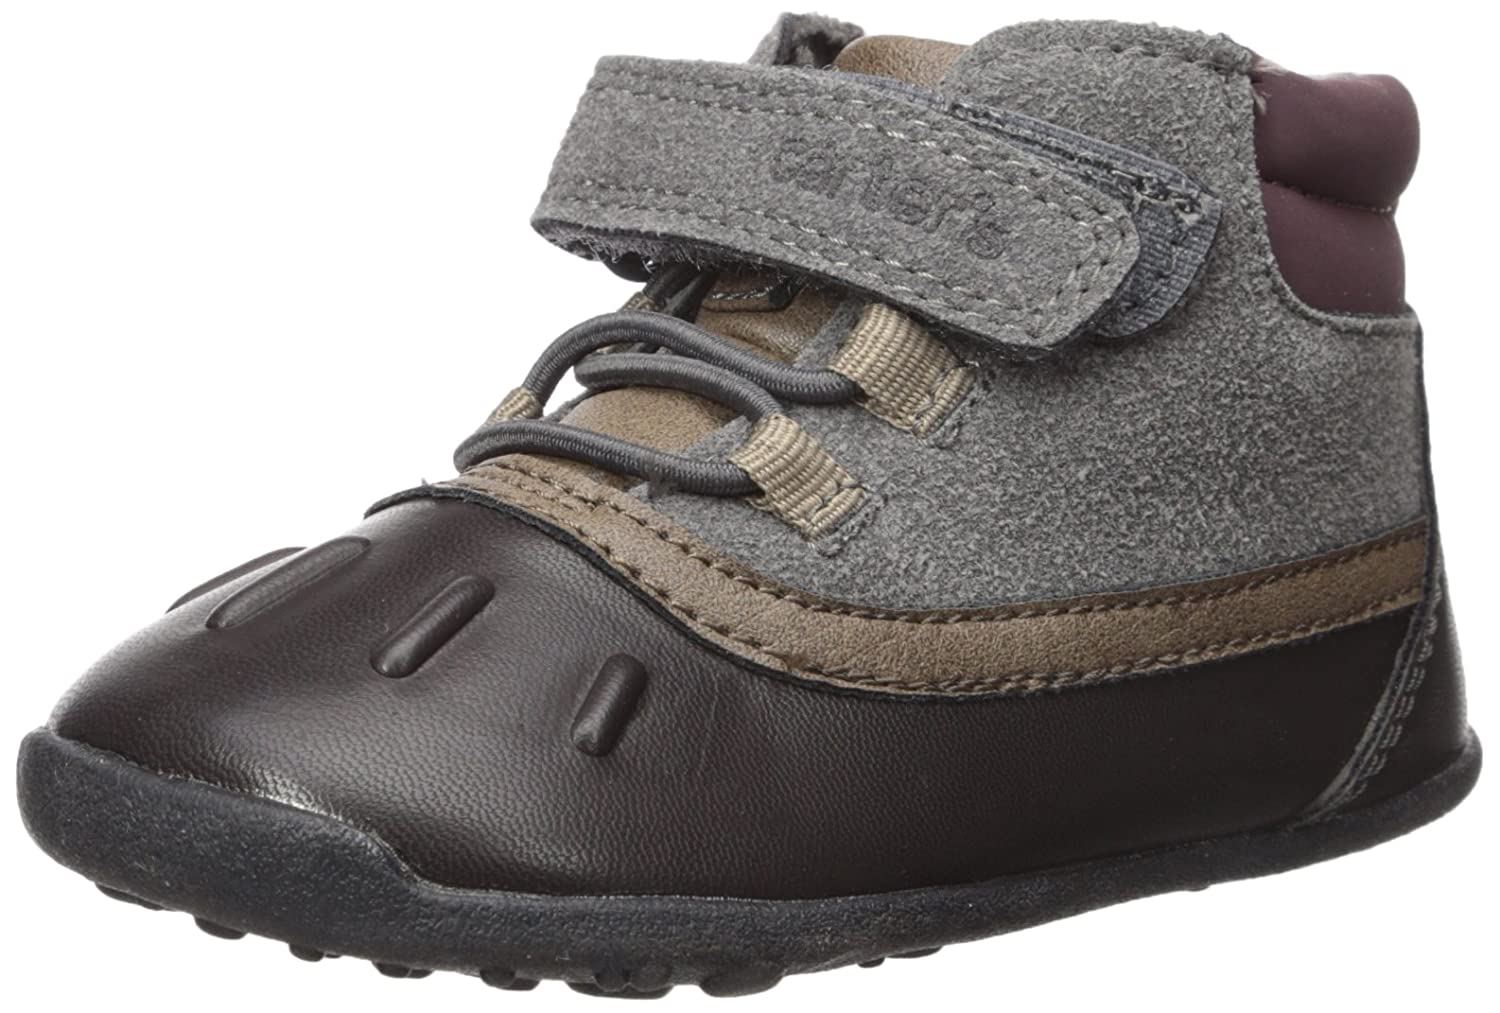 Carters Every Step Kids Stage 2 Boys Stand Jonah-SB Fashion Boot